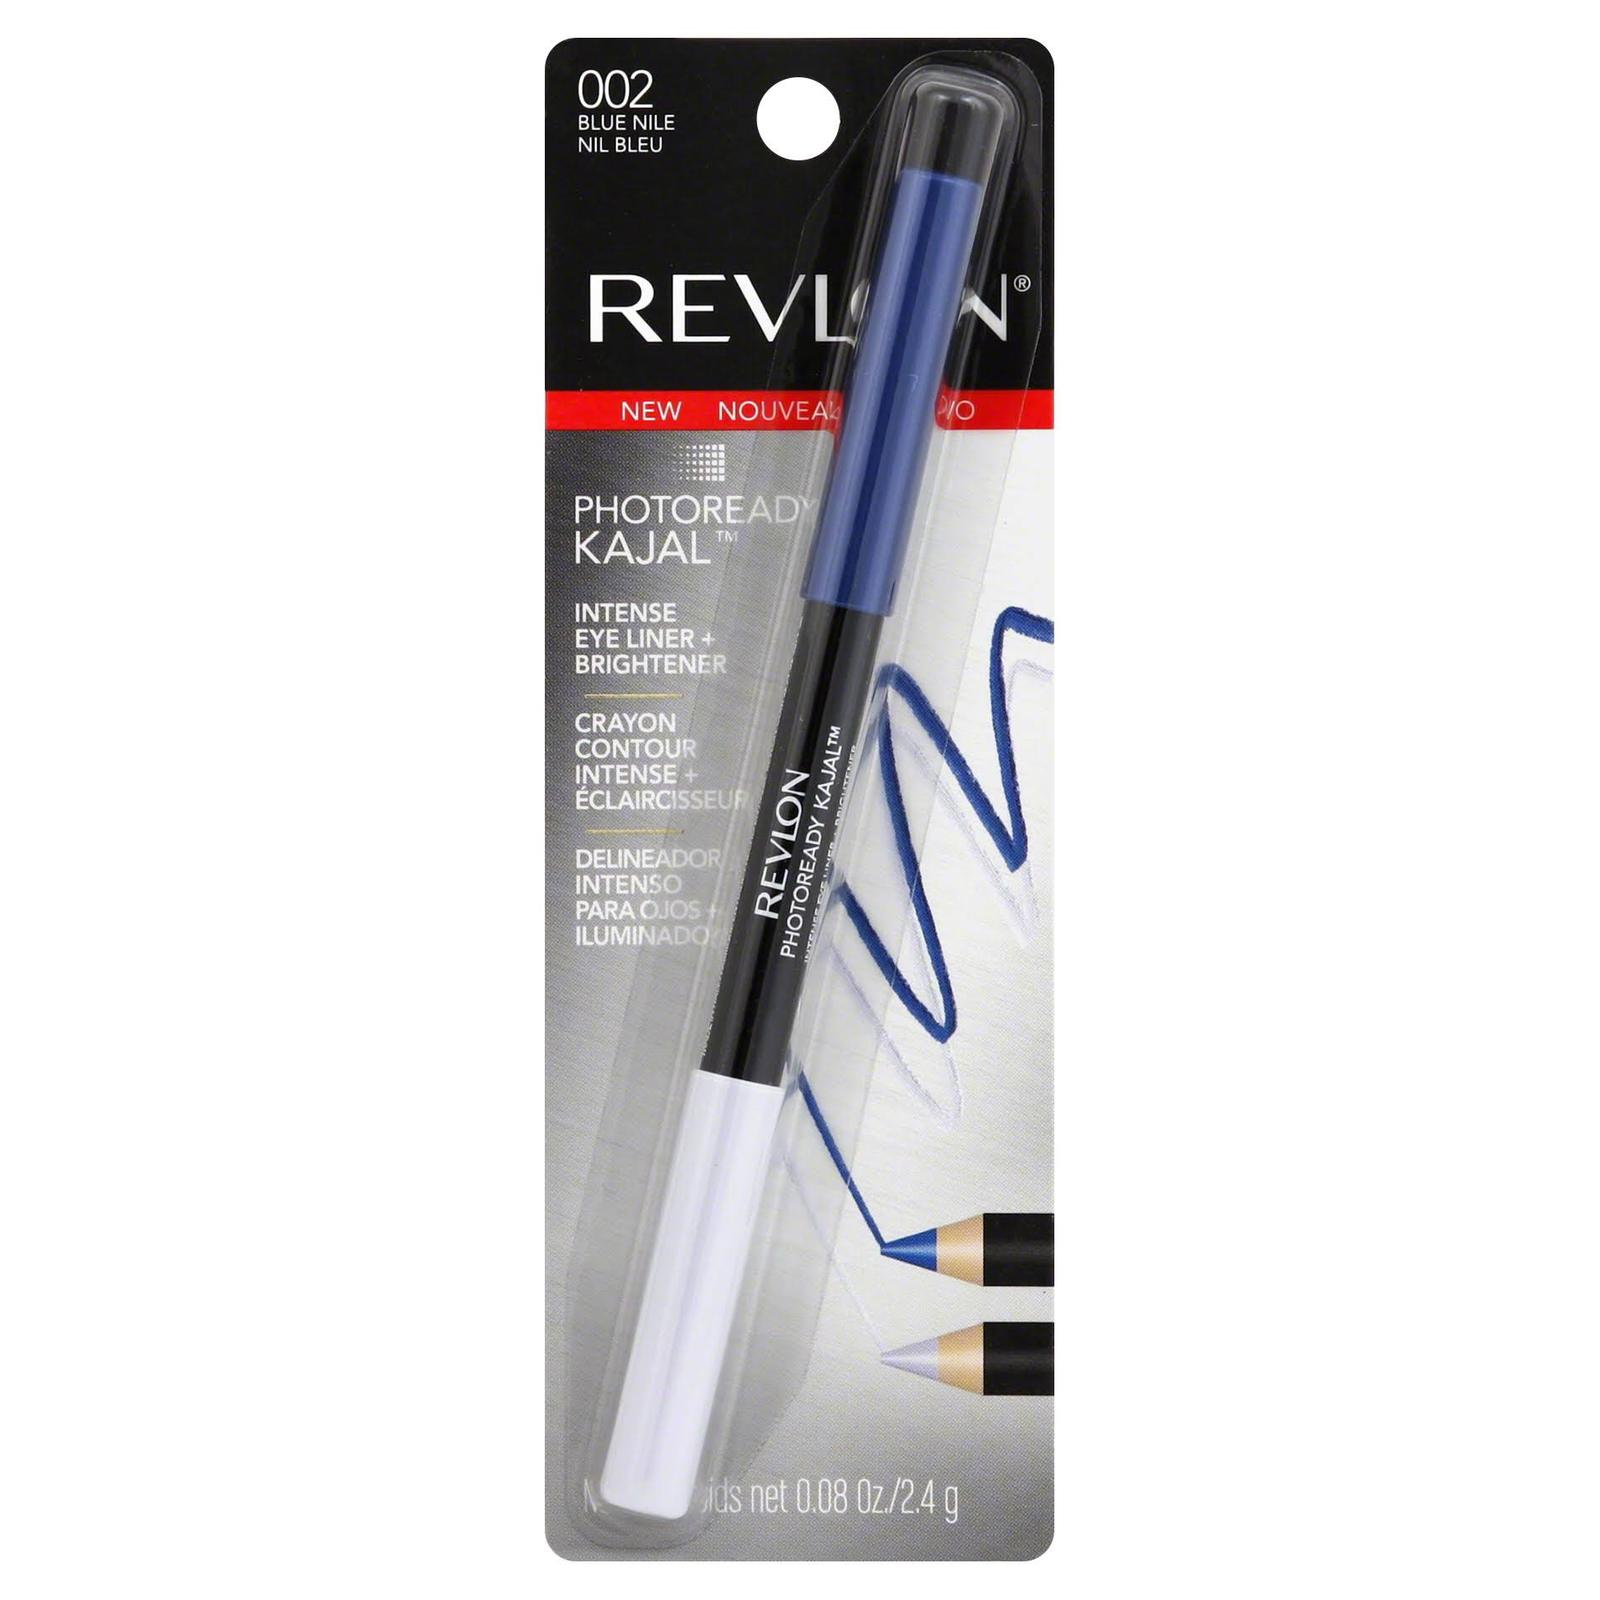 Primary image for Revlon Photoready Kajal Intense Eyeliner & Brightener Color # 002 Blue Nile